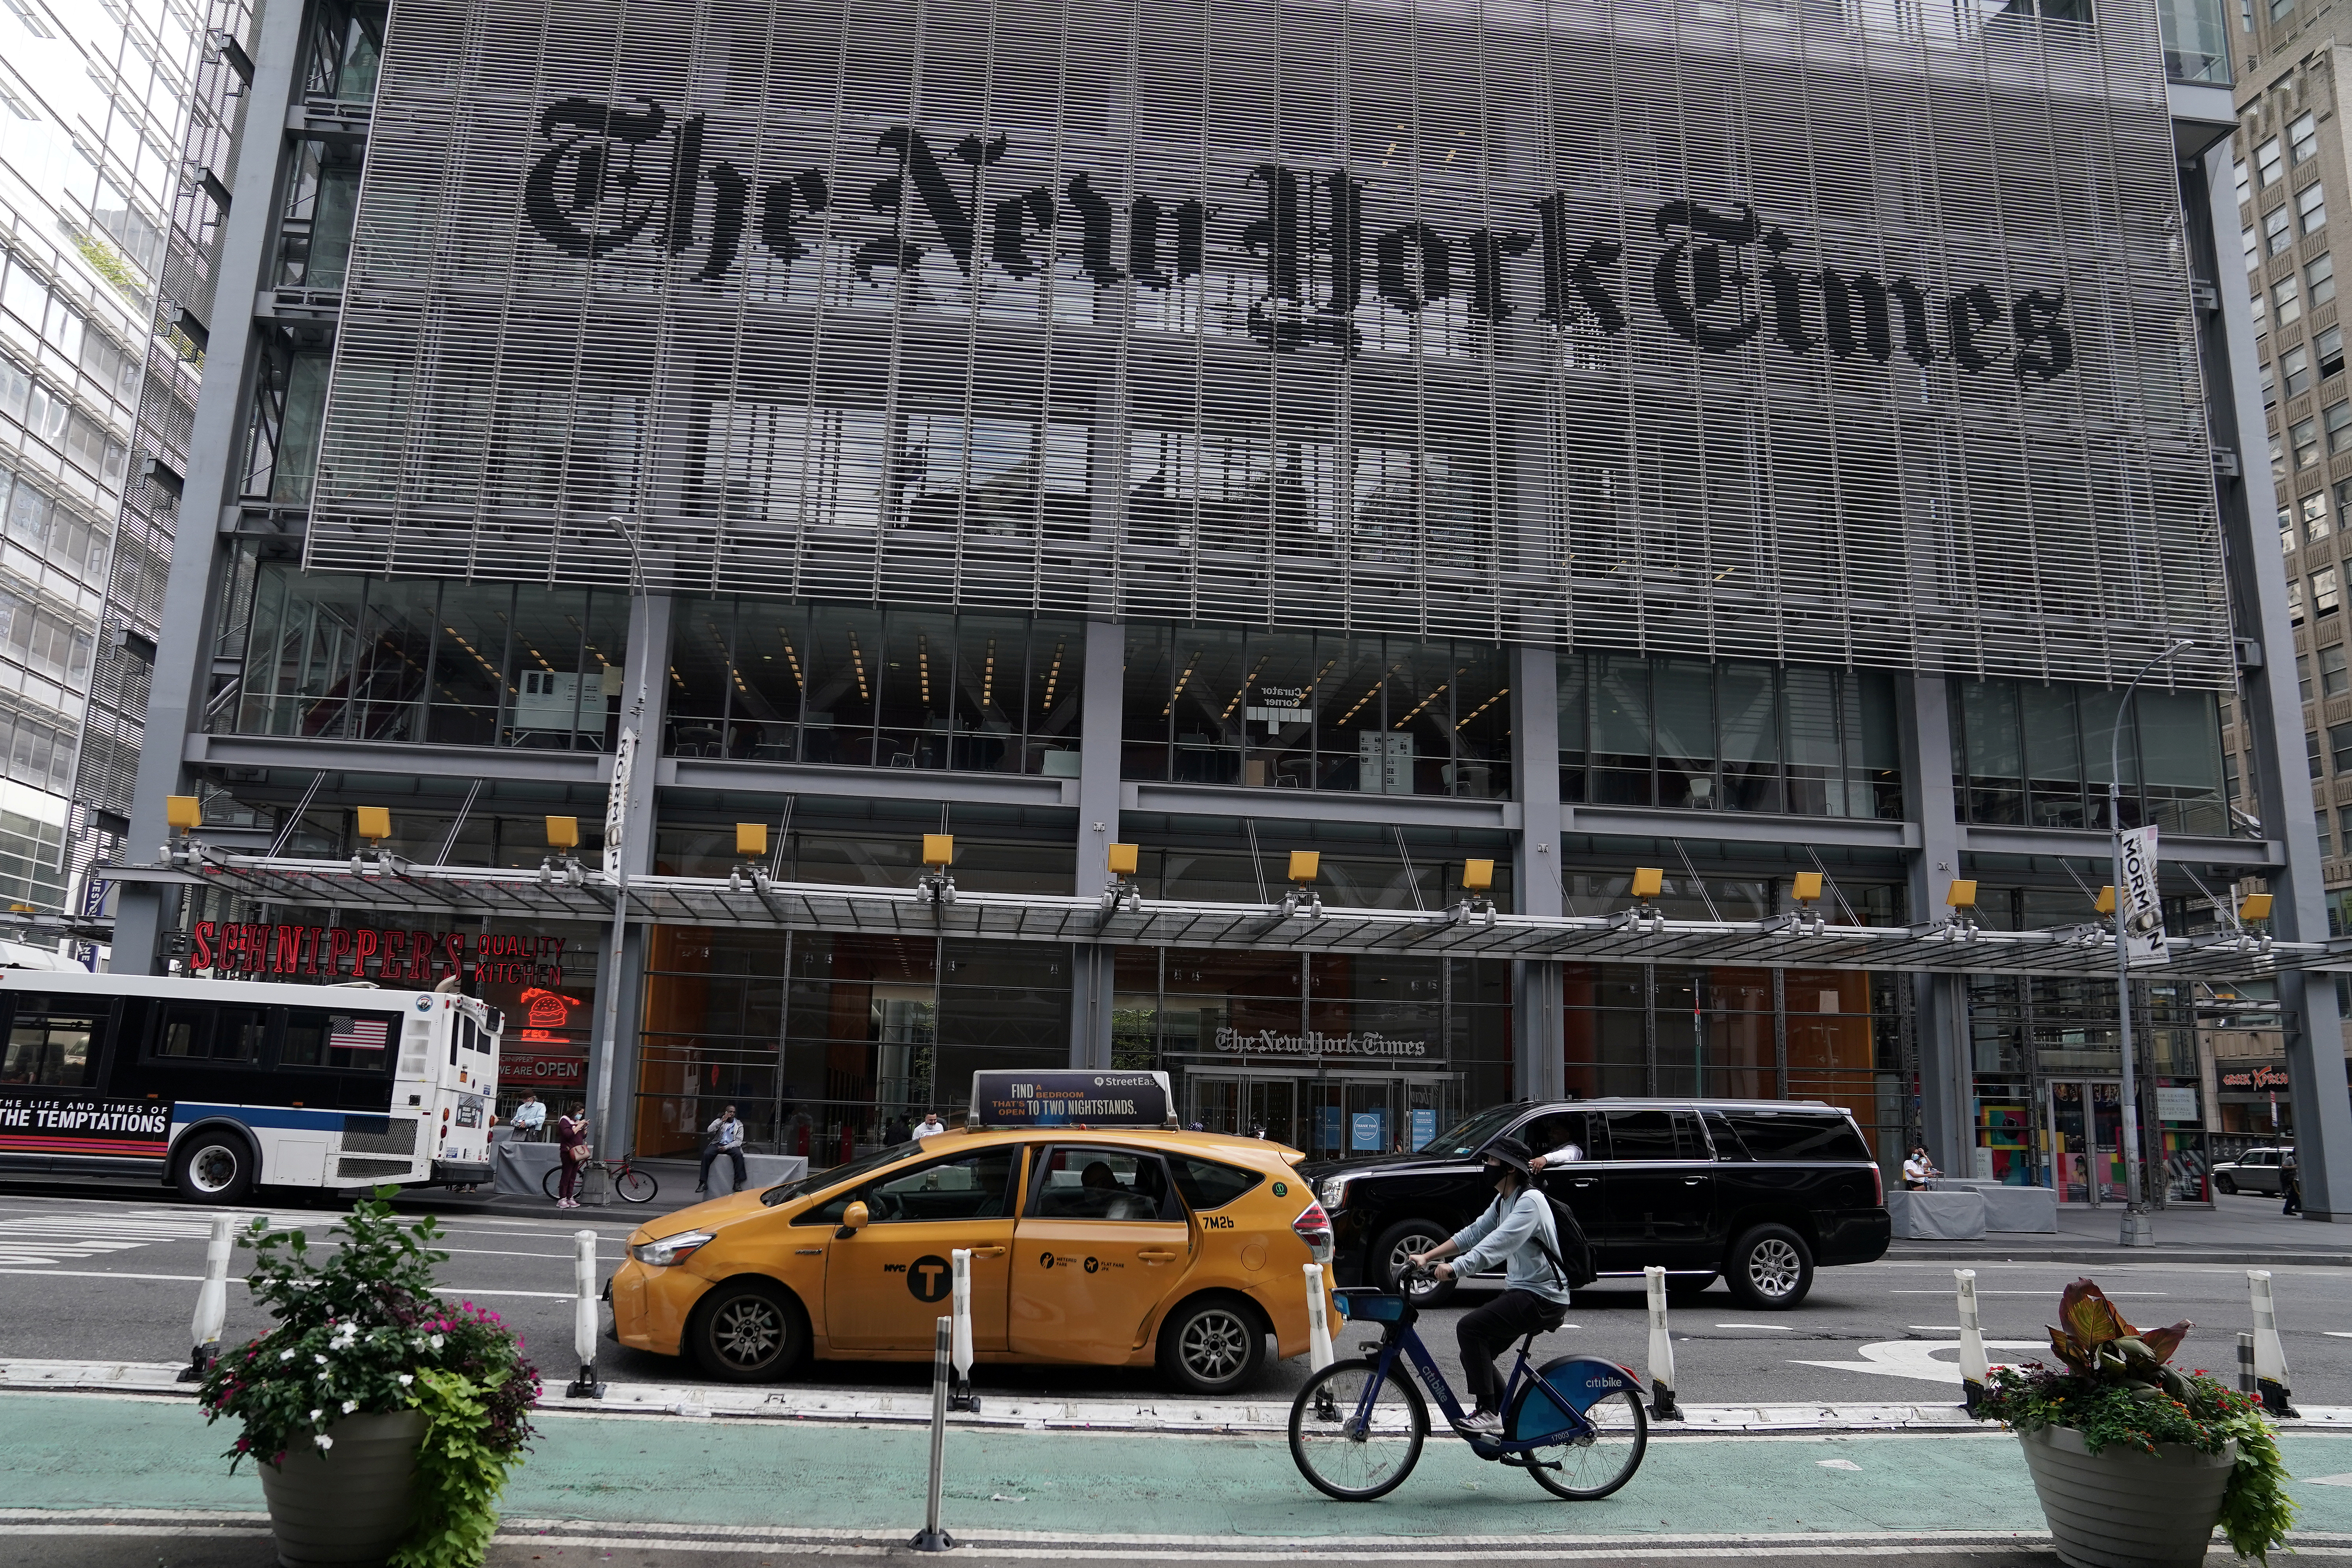 The New York Times office is pictured in New York City, September 28, 2020. REUTERS/Carlo Allegri